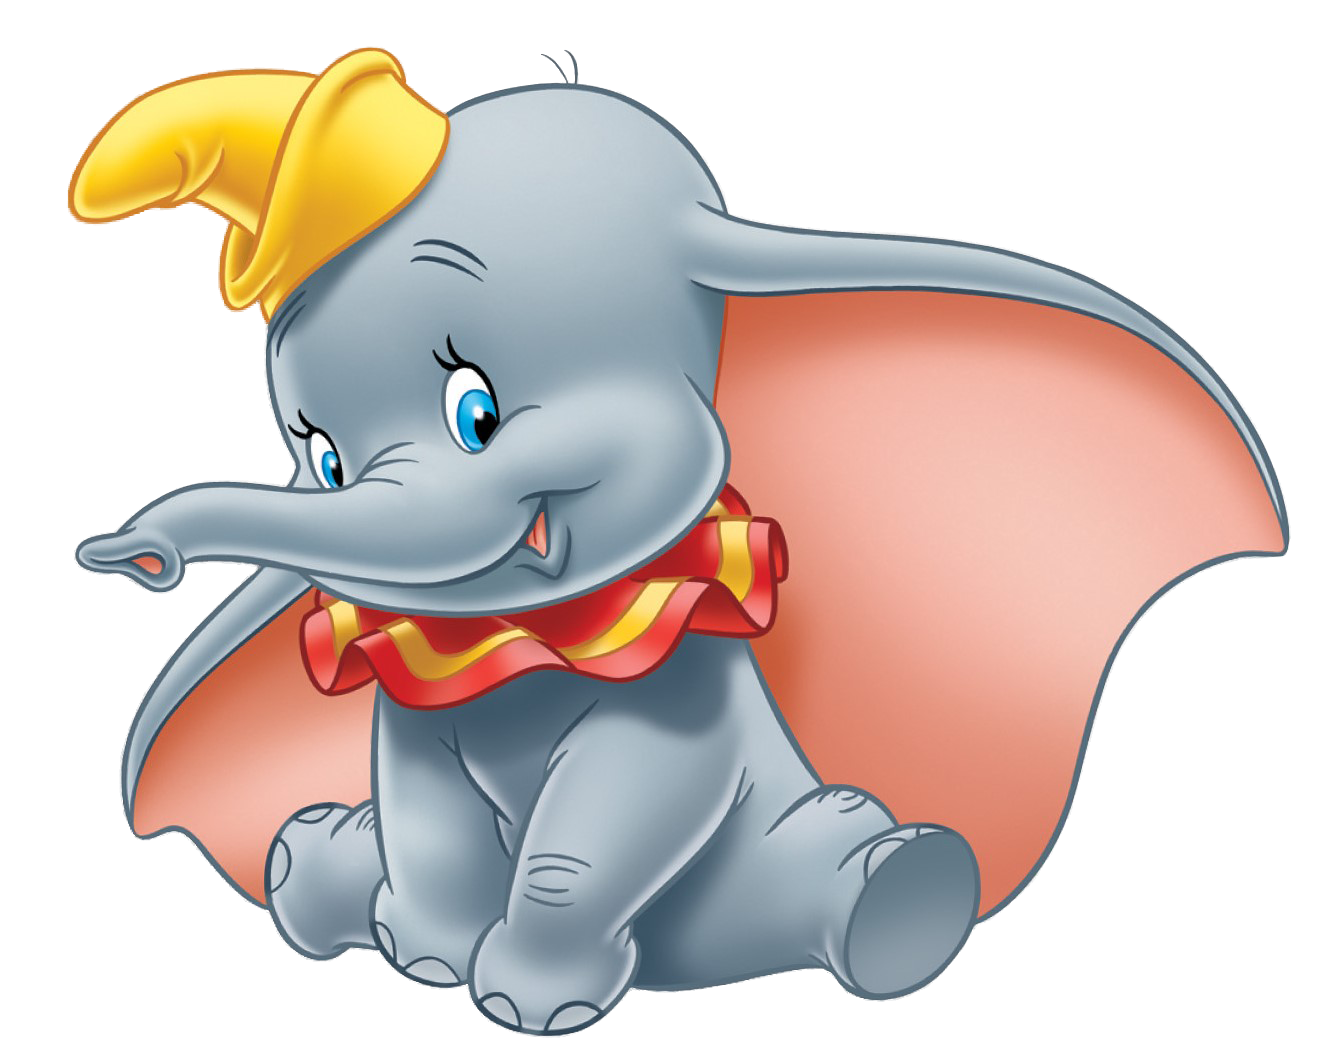 1339x1056 35 Dumbo Wallpapers, Hd Creative Dumbo Photos, Full Hd Wallpapers